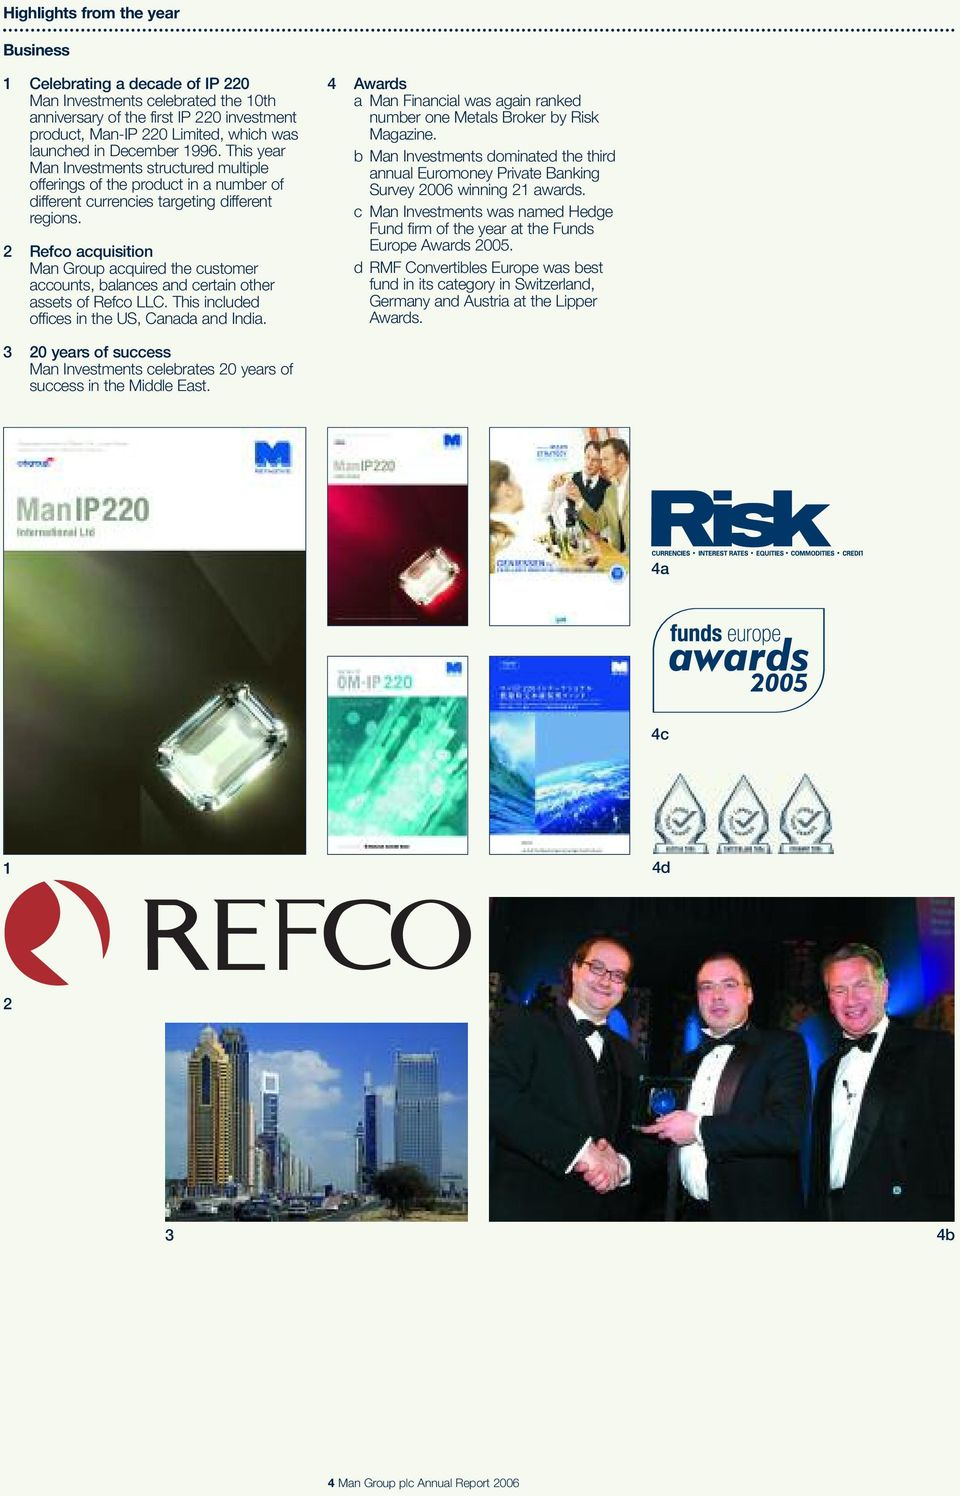 2 Refco acquisition Man Group acquired the customer accounts, balances and certain other assets of Refco LLC. This included offices in the US, Canada and India.